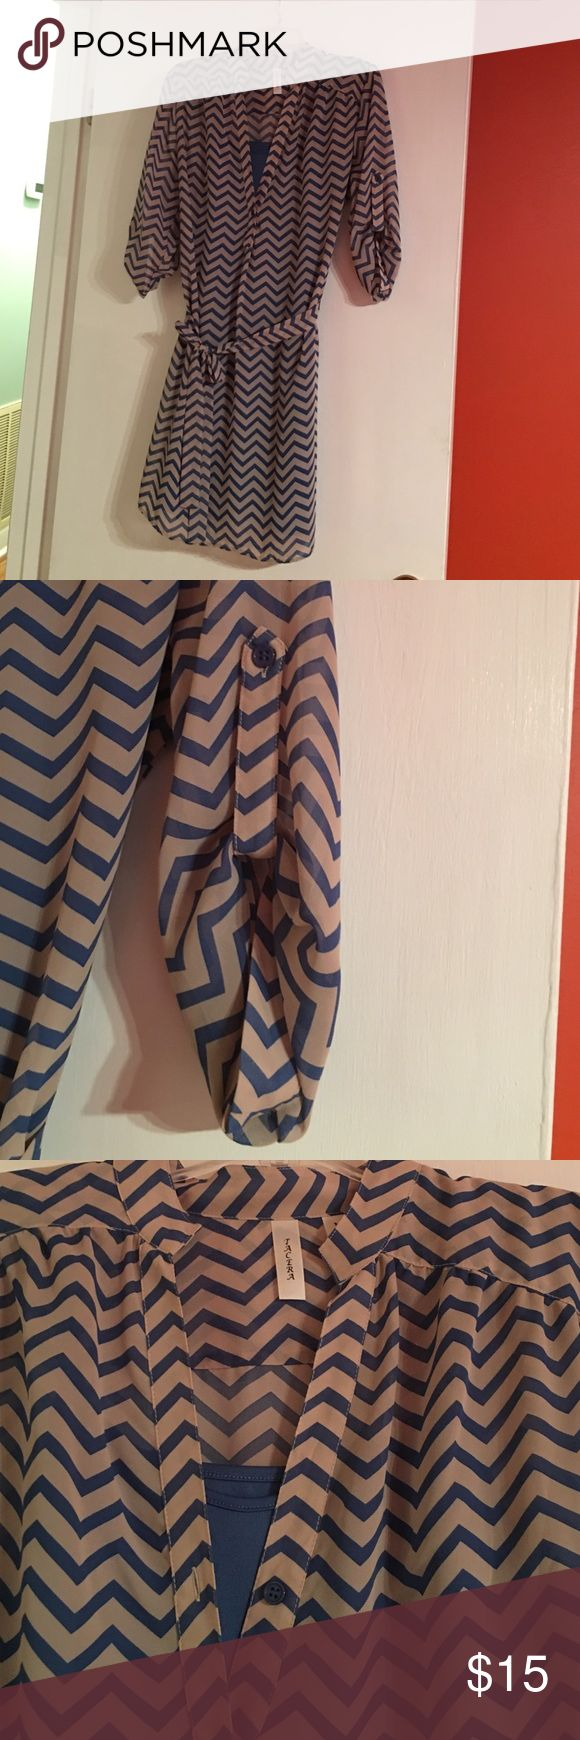 Size medium slightly worn chevron dress. Slightly worn blue and cream chevron dress with sleeves as shown in pictures. Has a belt at waist. From smoke free home. Dresses